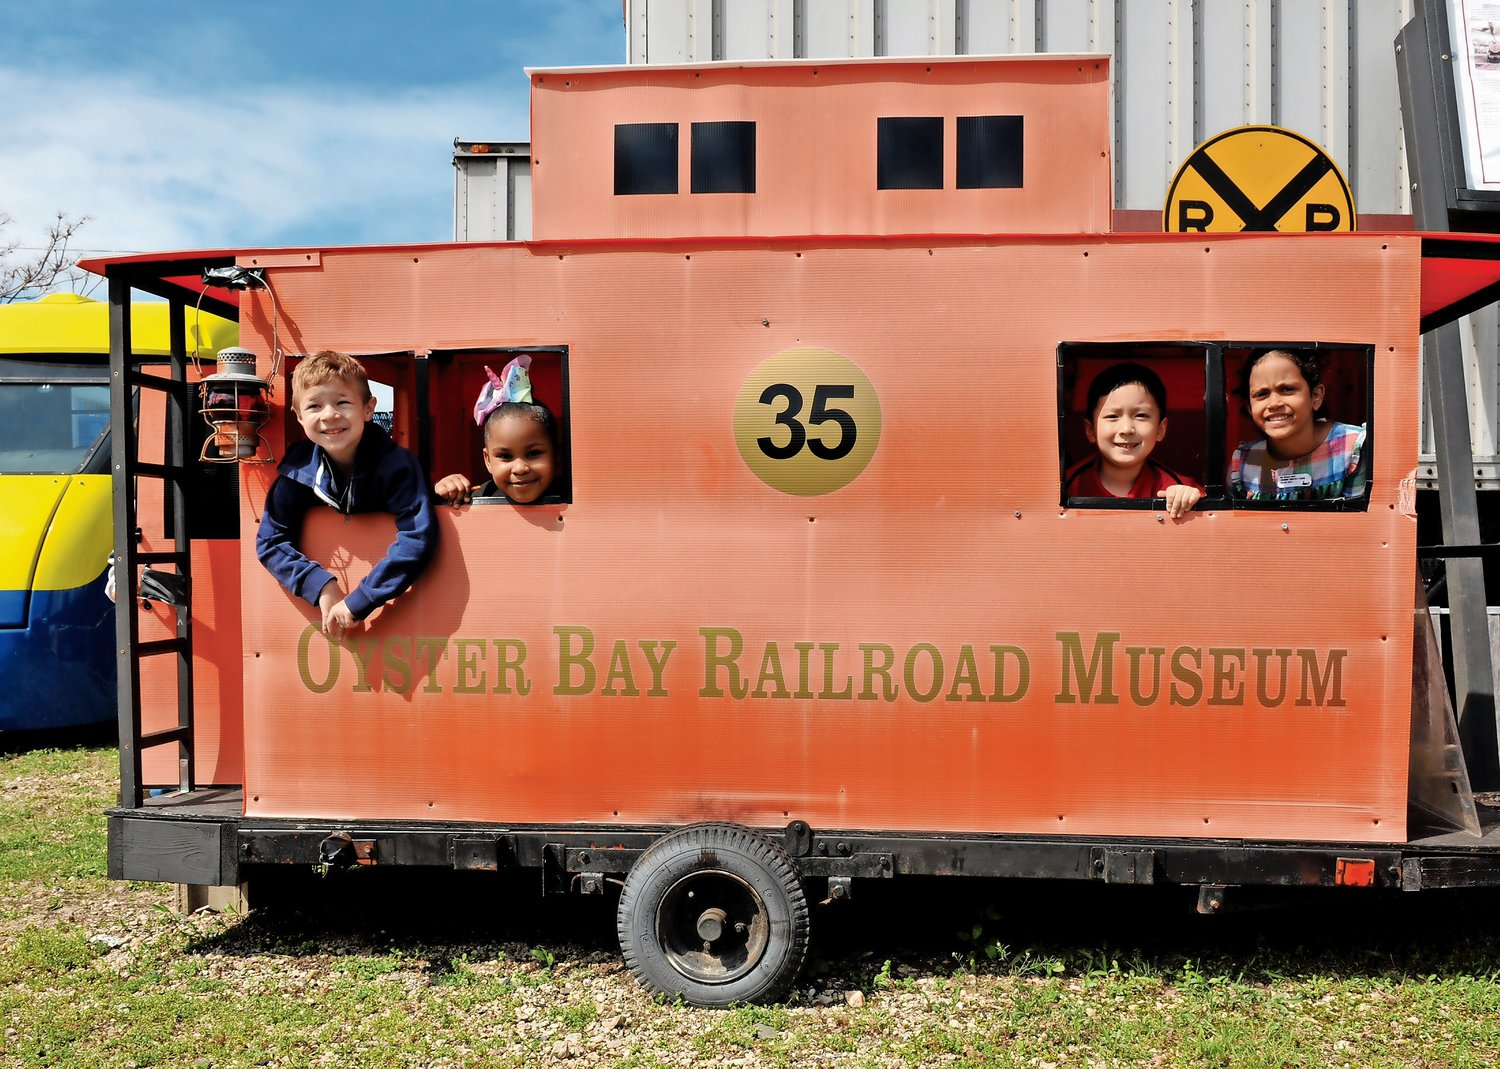 Trevor Malone, far left, Ana Bakalis, Austin Zhang and Olivia Adedano pretended they were passengers in a caboose at the Oyster Bay Railroad Museum's railyard.